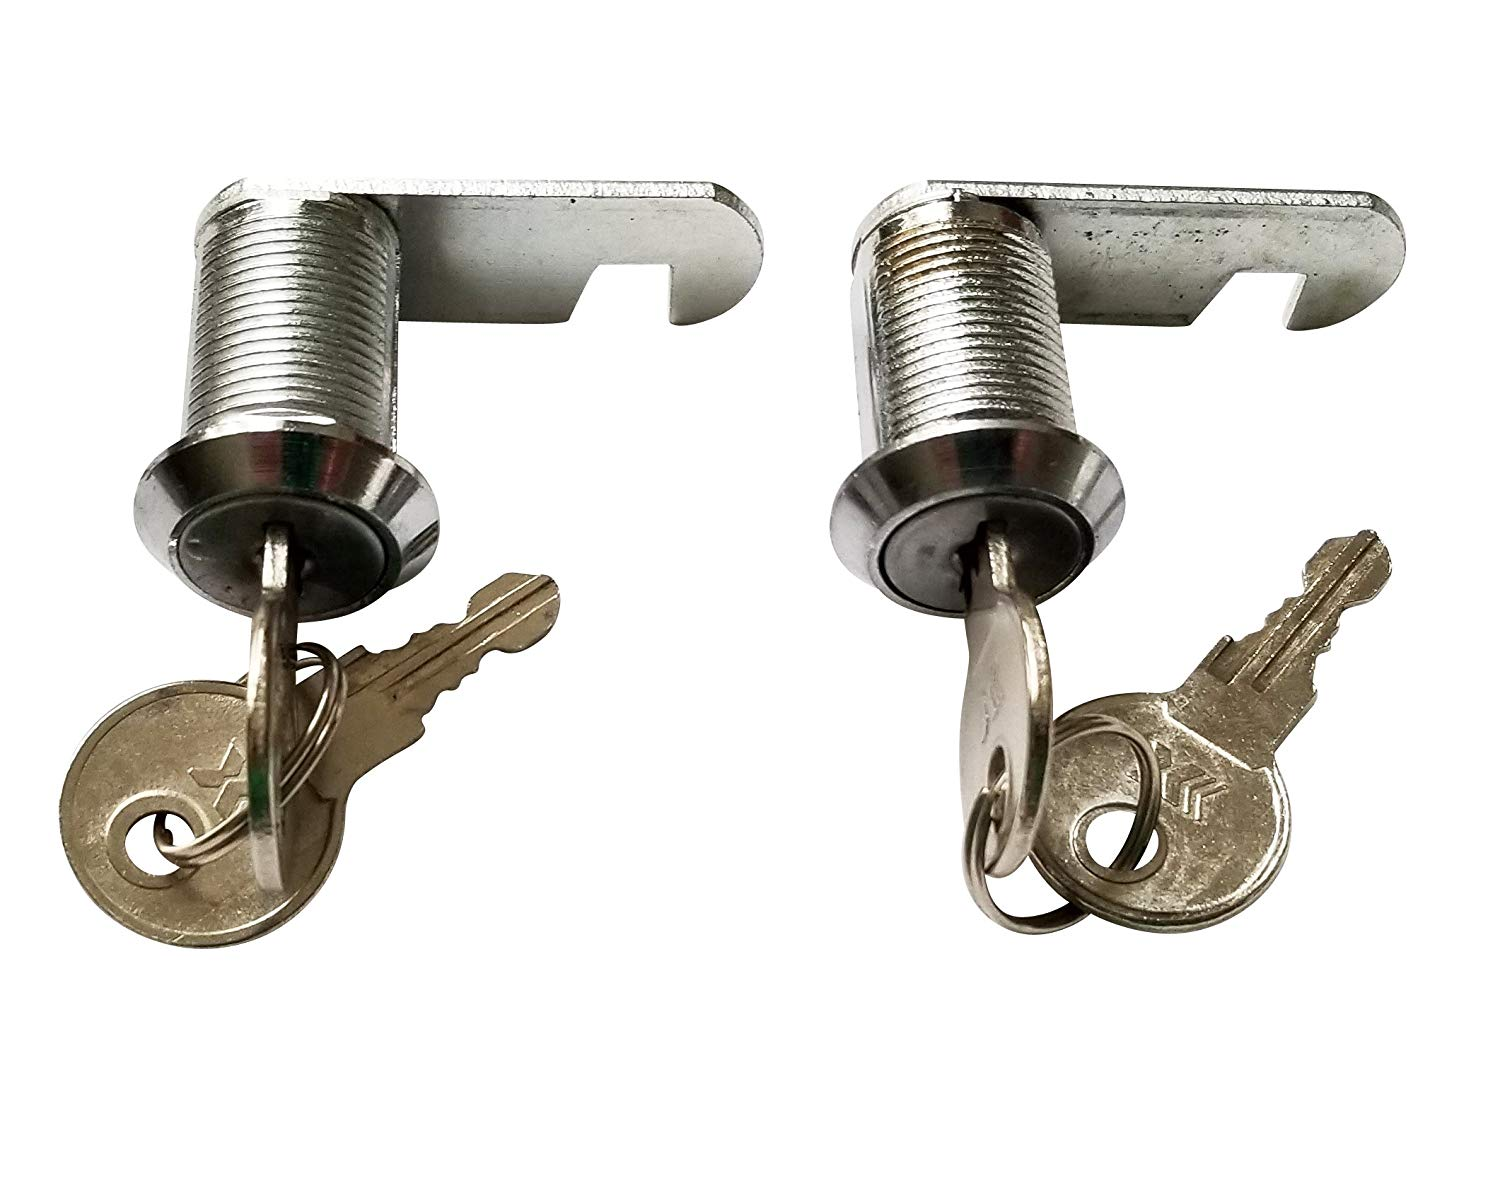 7/8 inch or 25mm Cam Lock with Flat Keys. 25mm 7/8 Cylinder and Chrome Finish, Keyed Alike (Pack of 2)